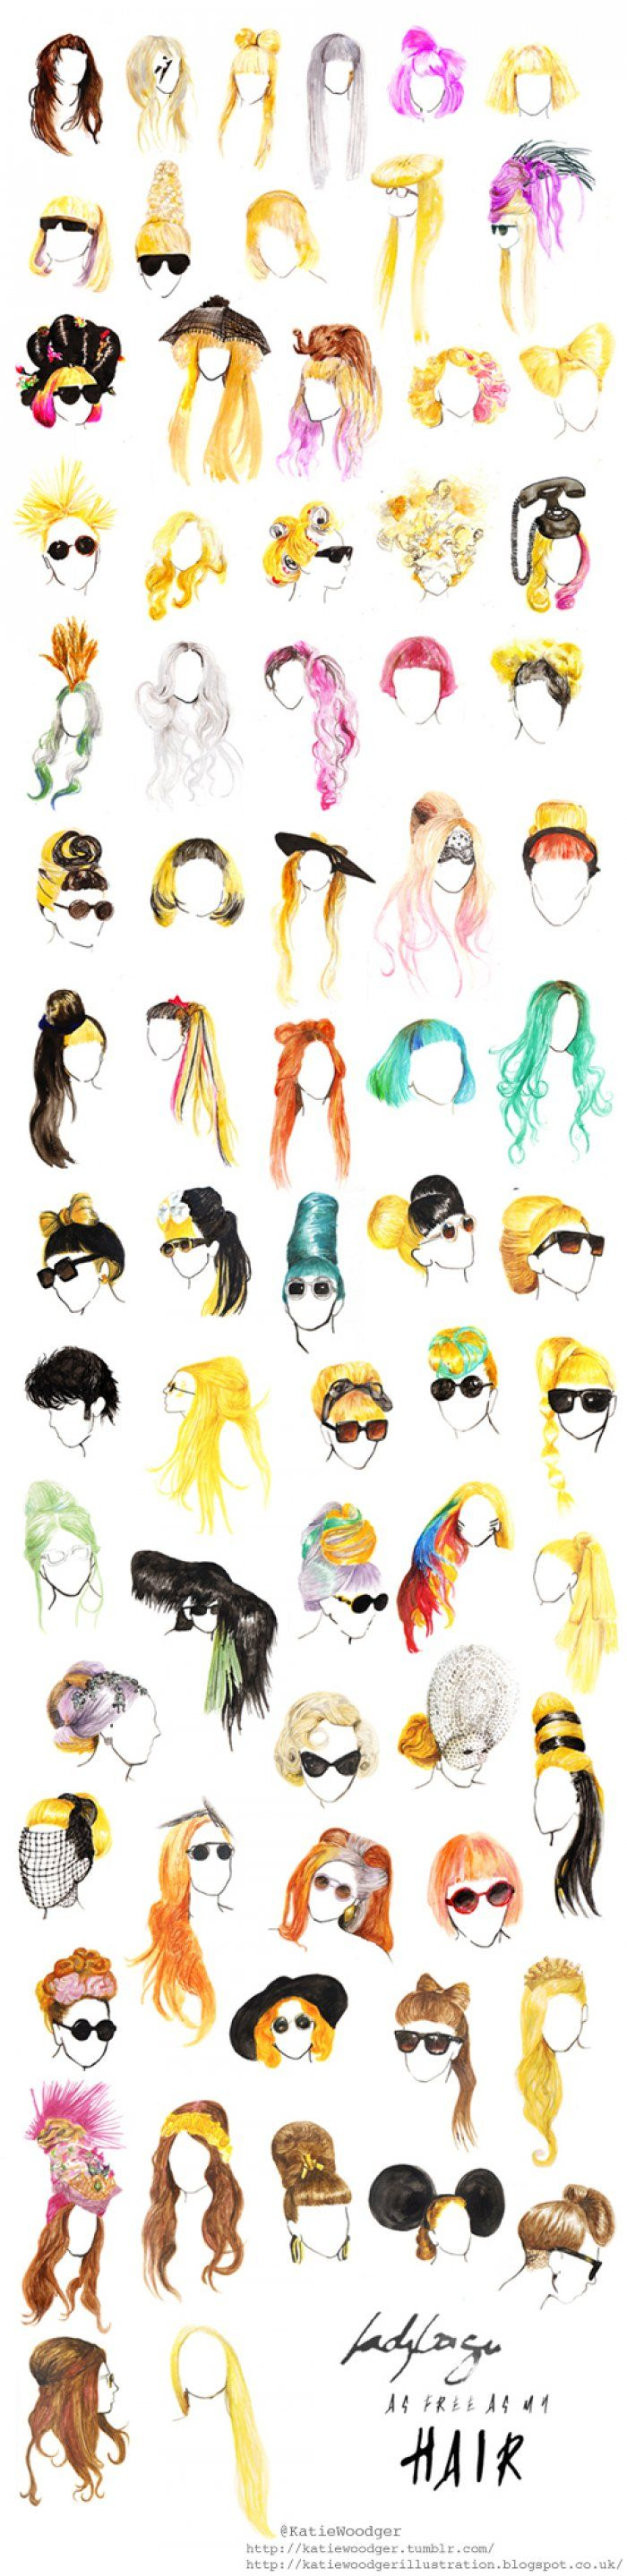 Awesome & amazing sketches of Lady Gaga's hairstyles/wigs throughout her career :) love it!